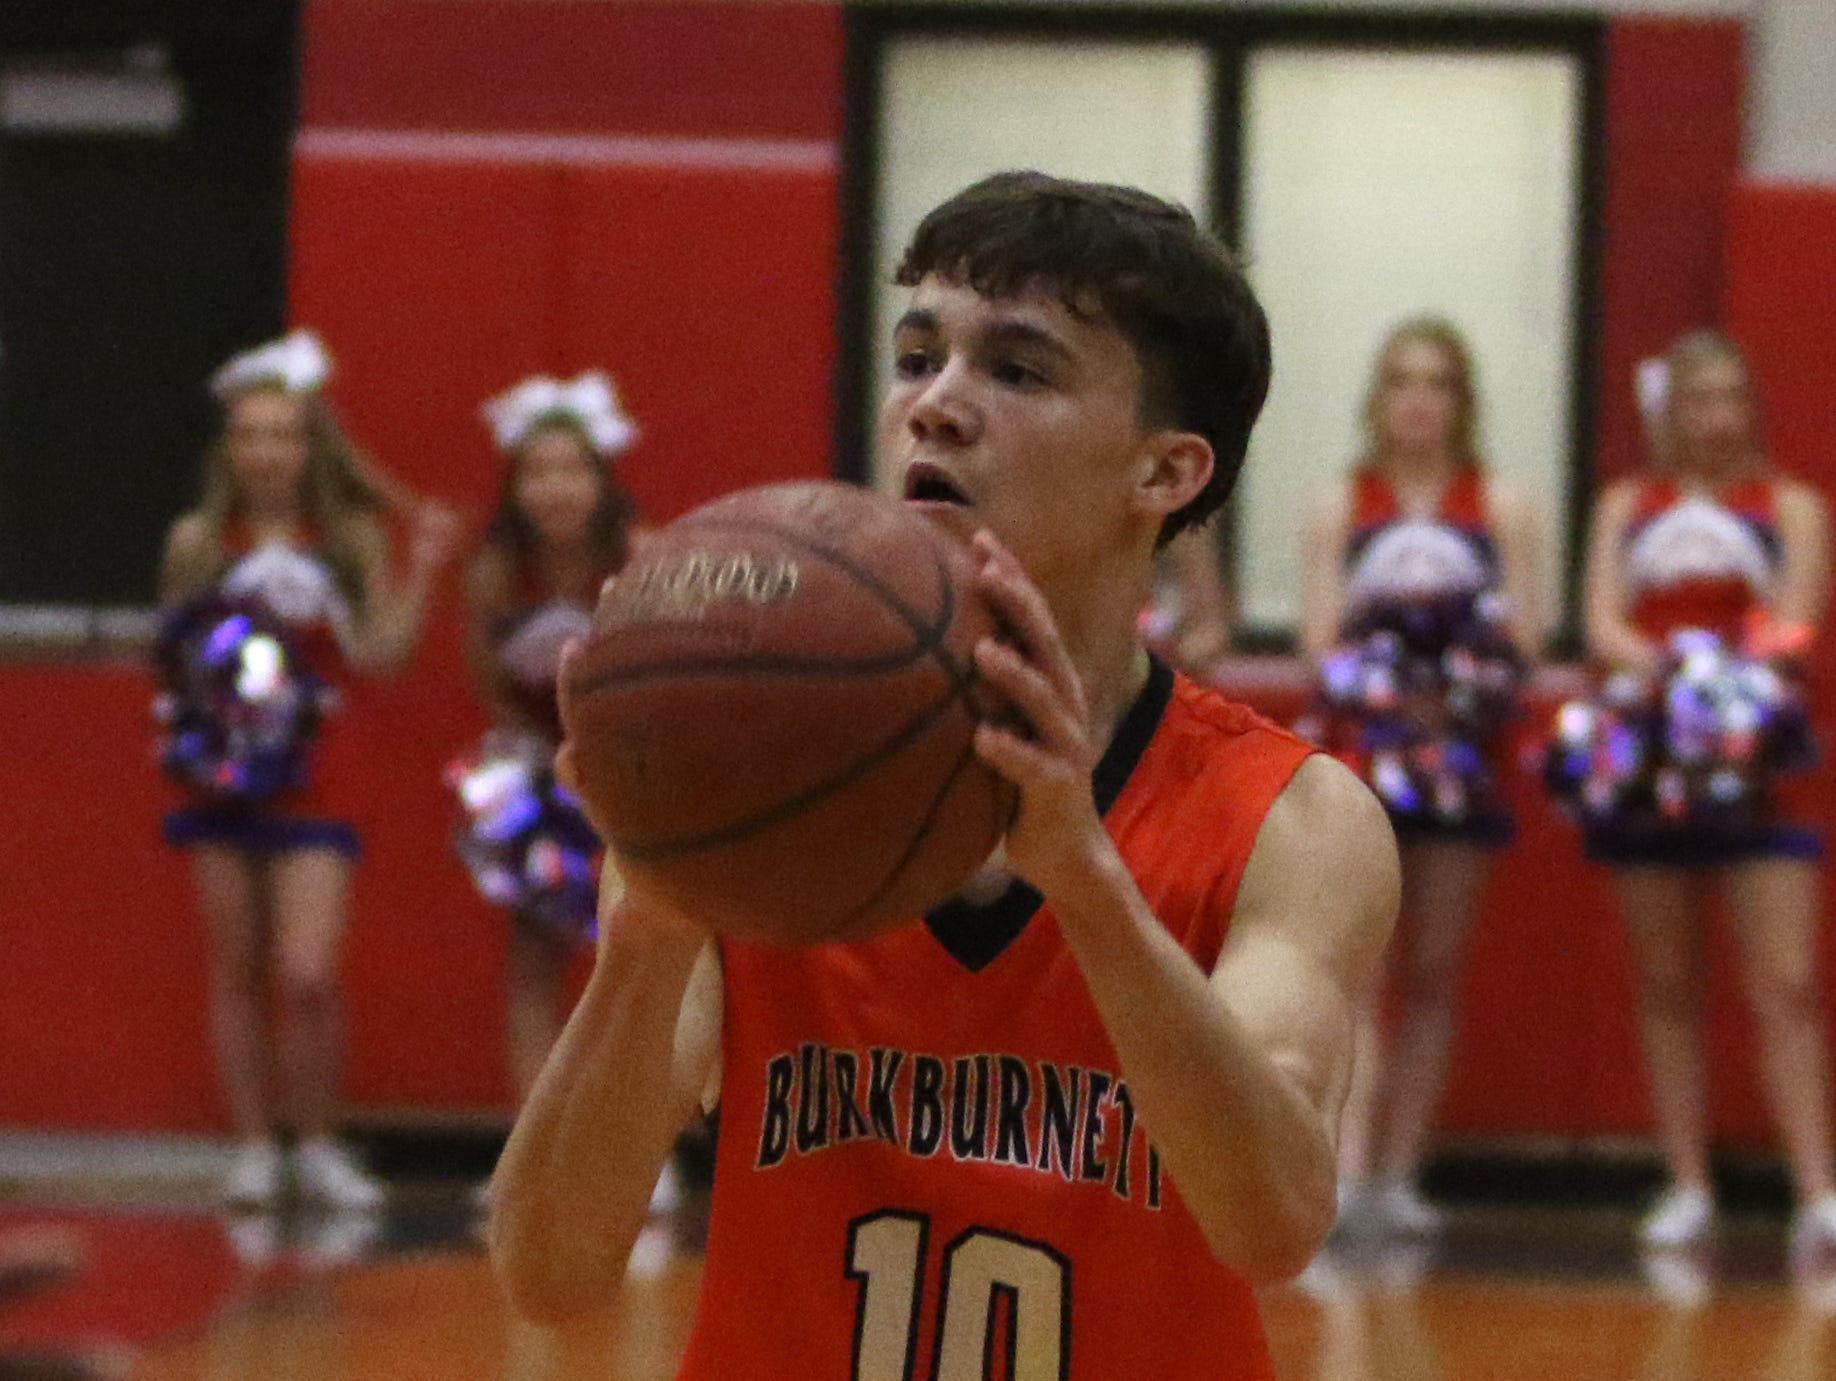 Burkburnett's Andrew Hawkins looks to the basket in the game against Graham Friday, Feb. 8, 2019, in Graham. The Steers defeated the Bulldogs 75-70.